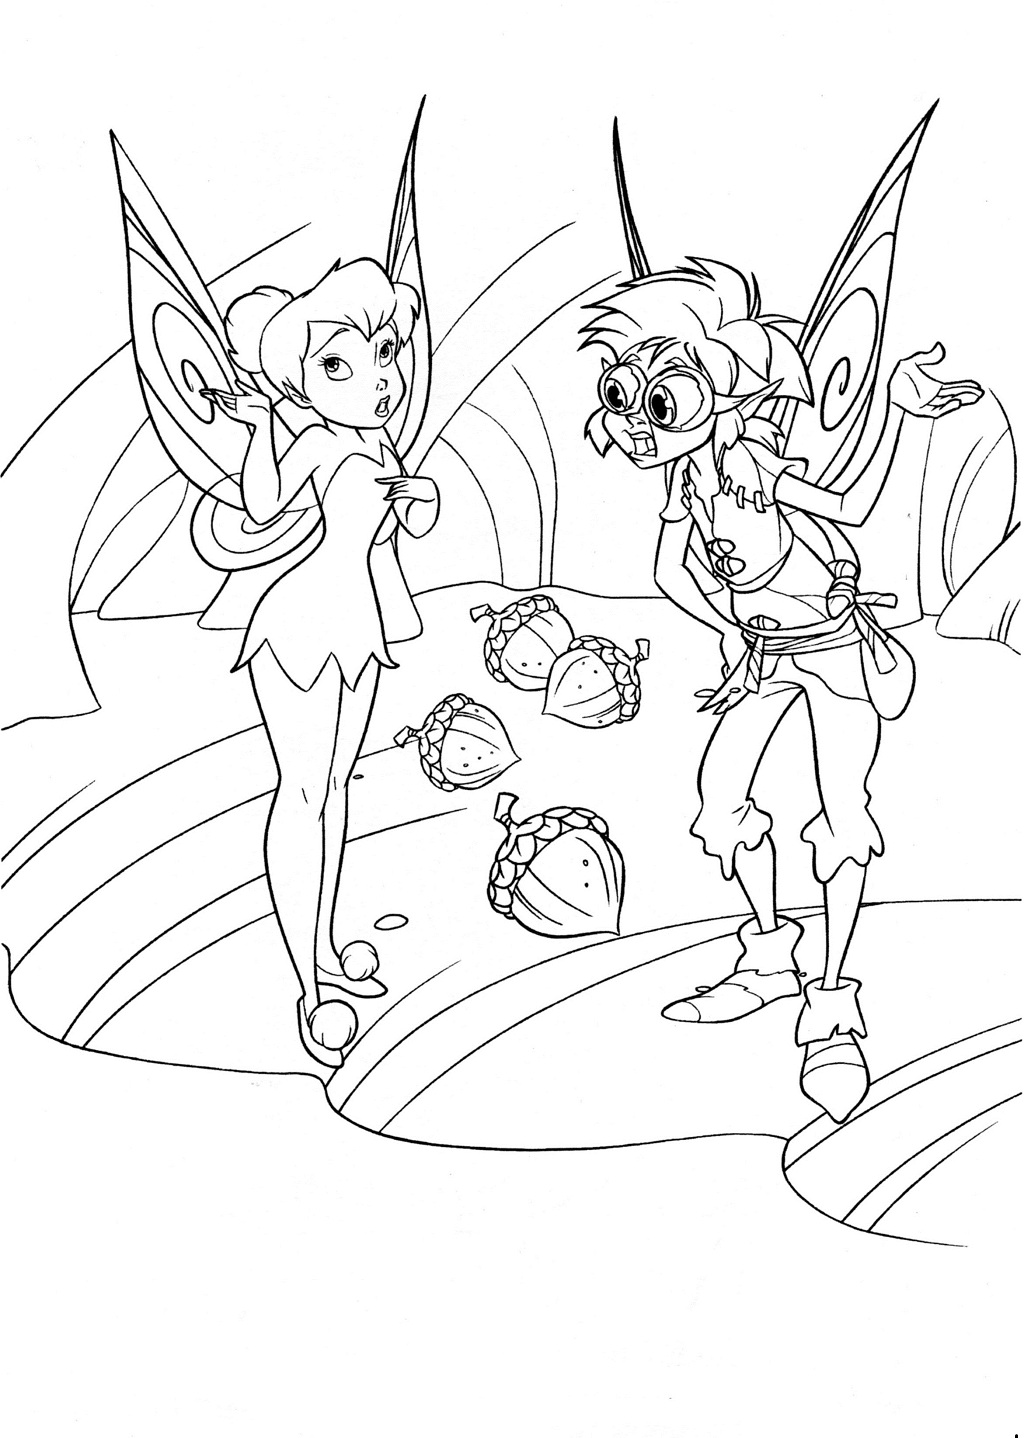 fairies coloring pages enchanted designs fairy mermaid blog free fairy fairies coloring pages